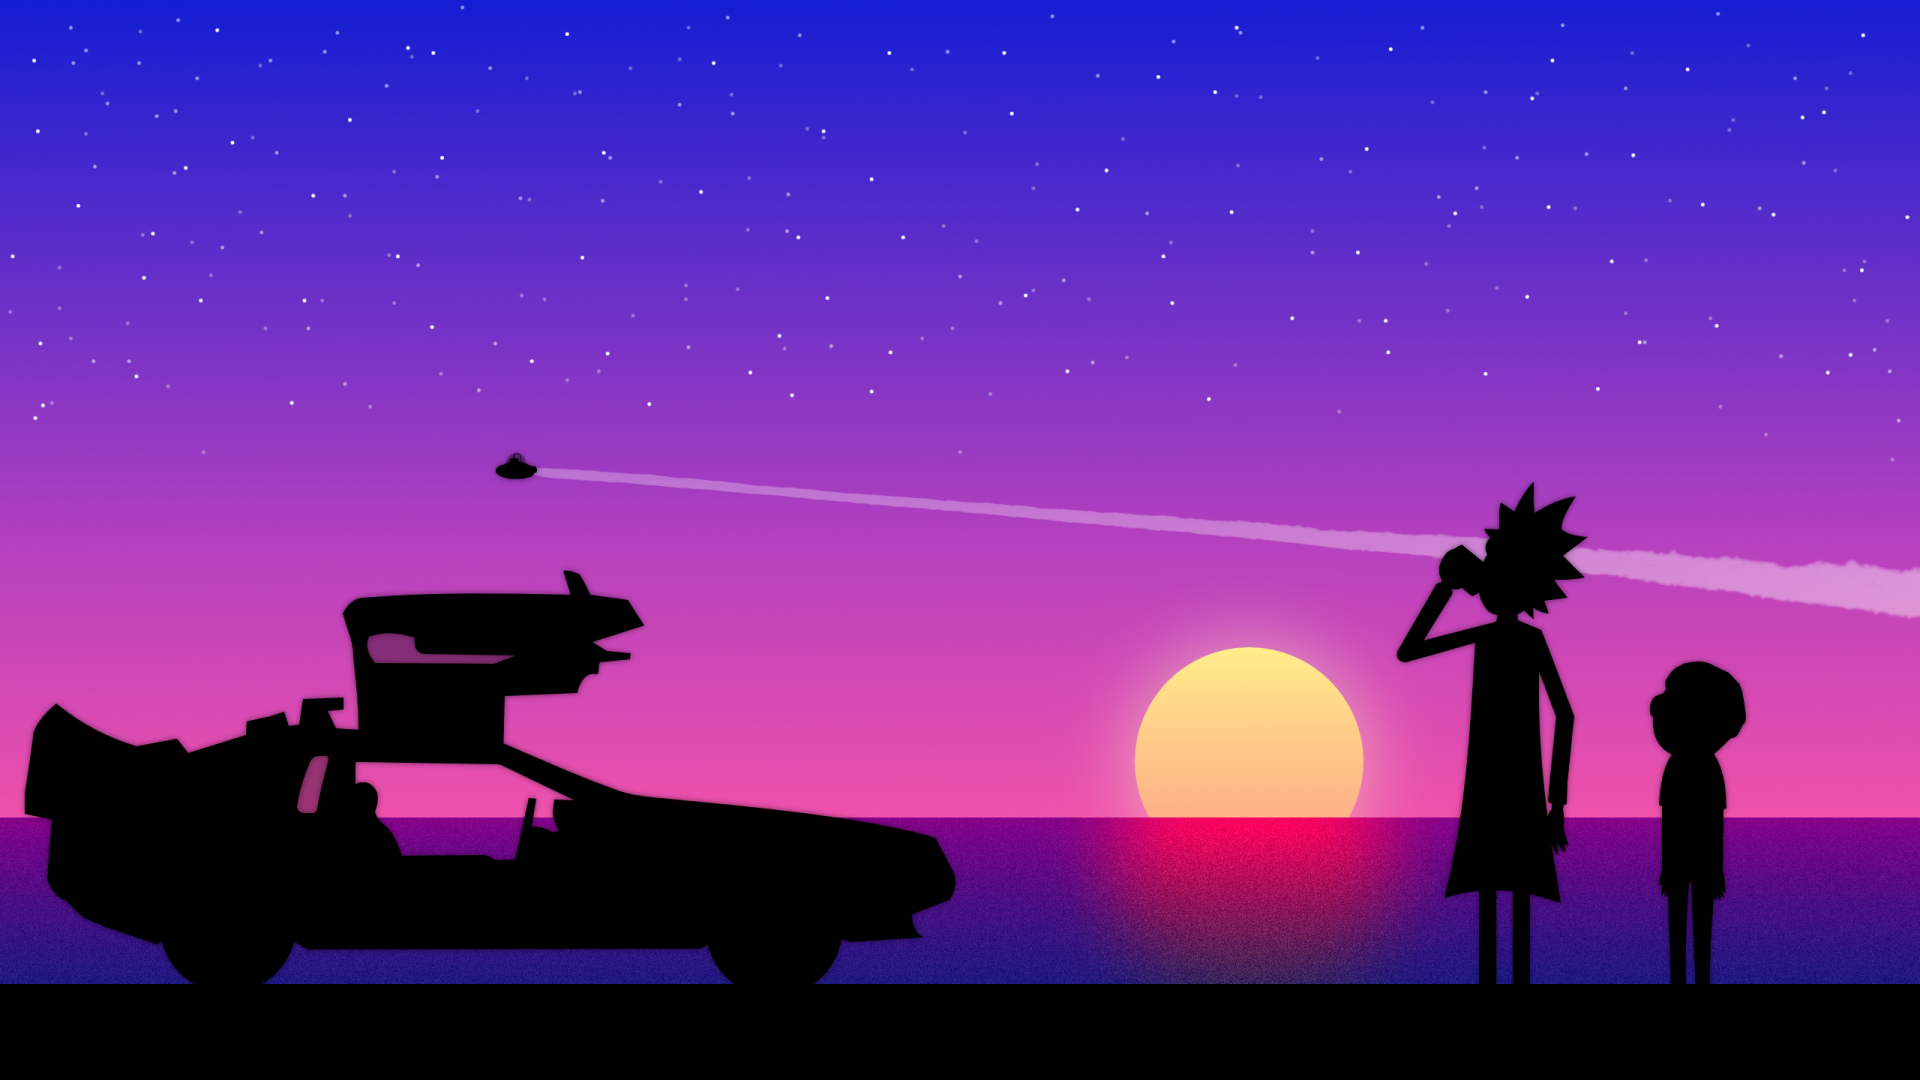 Cartoon - Rick and Morty  Rick Sanchez Morty Smith Purple Vector Car Sunset Wallpaper